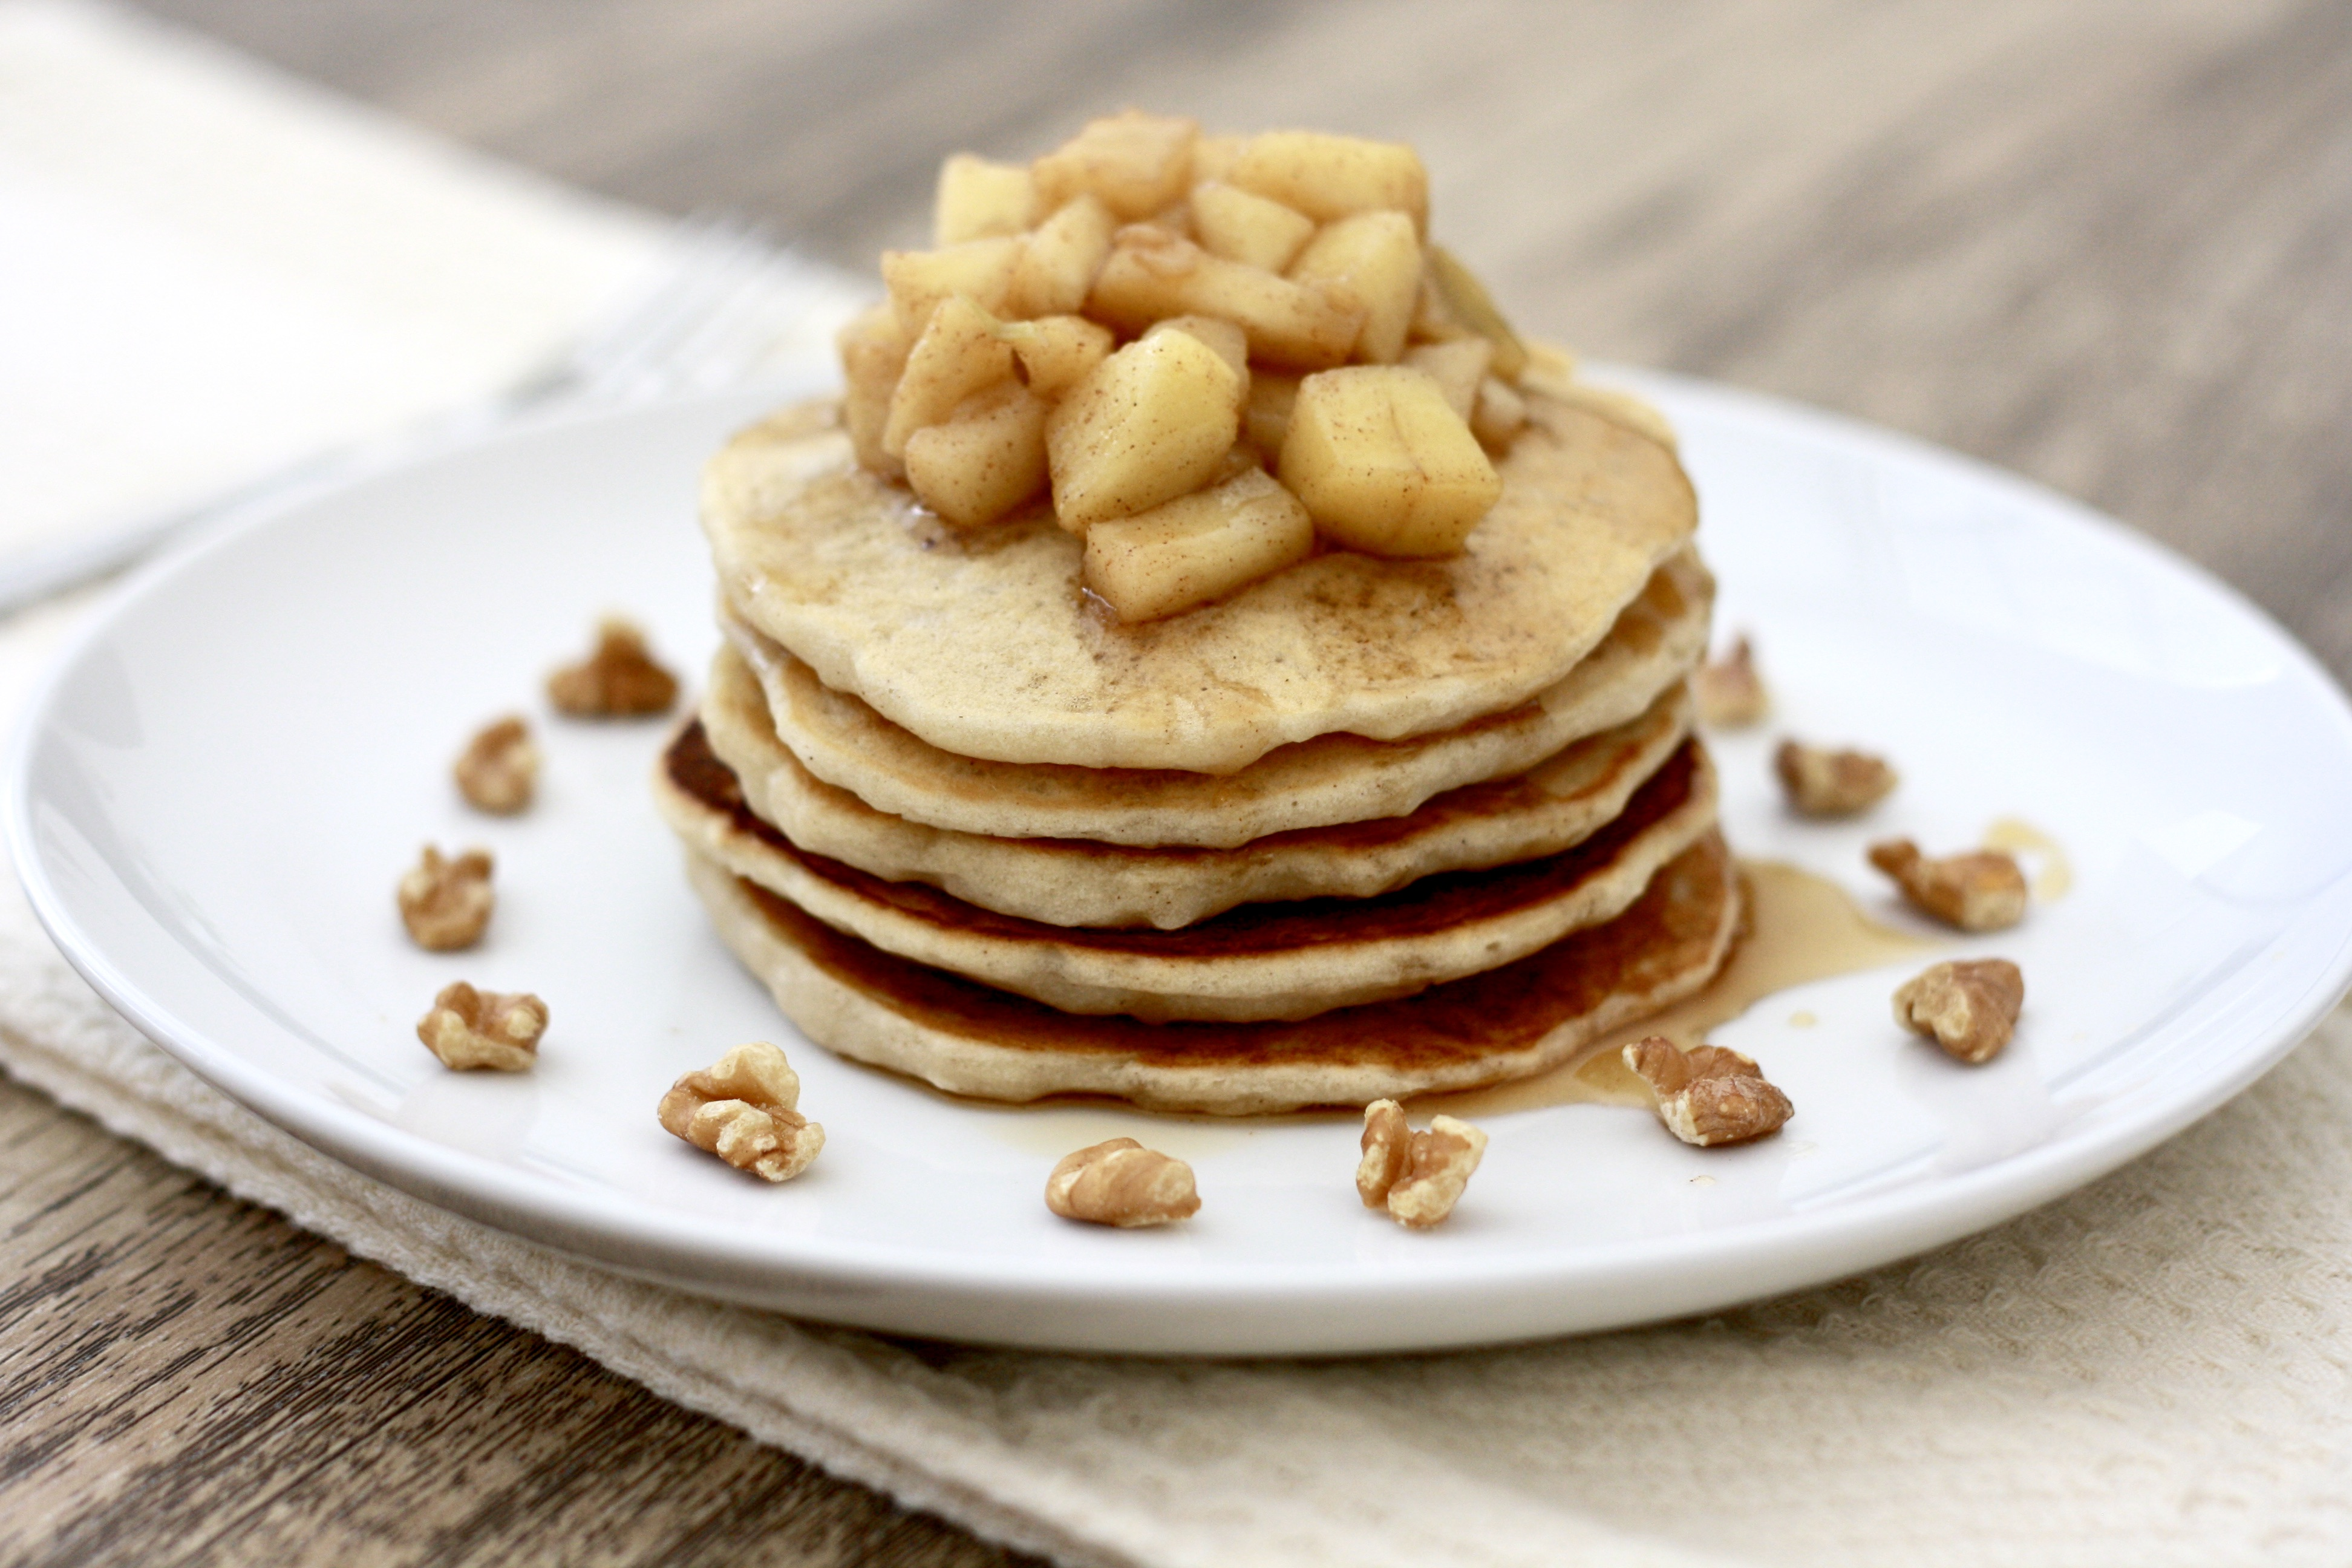 Gluten-Free Vegan Caramelized Apple Pancakes